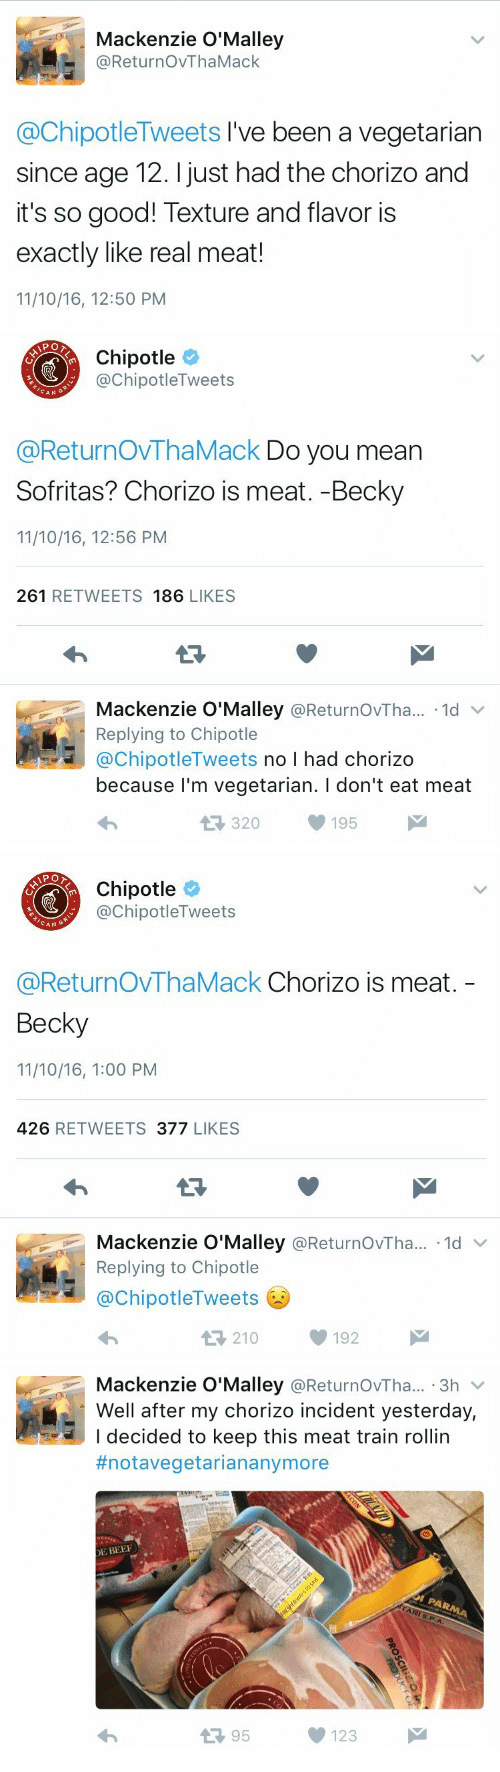 mackenzie: Mackenzie O'Malley  @ReturnOvThaMack  @ChipotleTweets I've been a vegetarian  since age 12. I just had the chorizo and  it's so good! Texture and flavor is  exactly like real meat!  11/10/16, 12:50 PM   Chipotle  @ChipotleTweets  CAN  @ReturnOVThaMack Do you mean  Sofritas? Chorizo is meat. -Becky  11/10/16, 12:56 PM  261 RETWEETS 186 LIKES  Mackenzie O'Malley @ReturnOvTha.. 1d  Replying to Chipotle  @ChipotleTweets no I had chorizo  because l'm vegetarian. I don't eat meat  320195   Chipotle  @ChipotleTweets  CAN G  @ReturnOvThaMack Chorizo is meat.  Becky  11/10/16, 1:00 PM  426 RETWEETS 377 LIKES  Mackenzie O'Malley @ReturnOvTha...-1d ﹀  Replying to Chipotle  @ChipotleTweets  わ  210192   Mackenzie O'Malley @ReturnOvTha... 3h v  Well after my chorizo incident yesterday,  I decided to keep this meat train rollin  #notavegetariananymore  E BEE  13 95  123